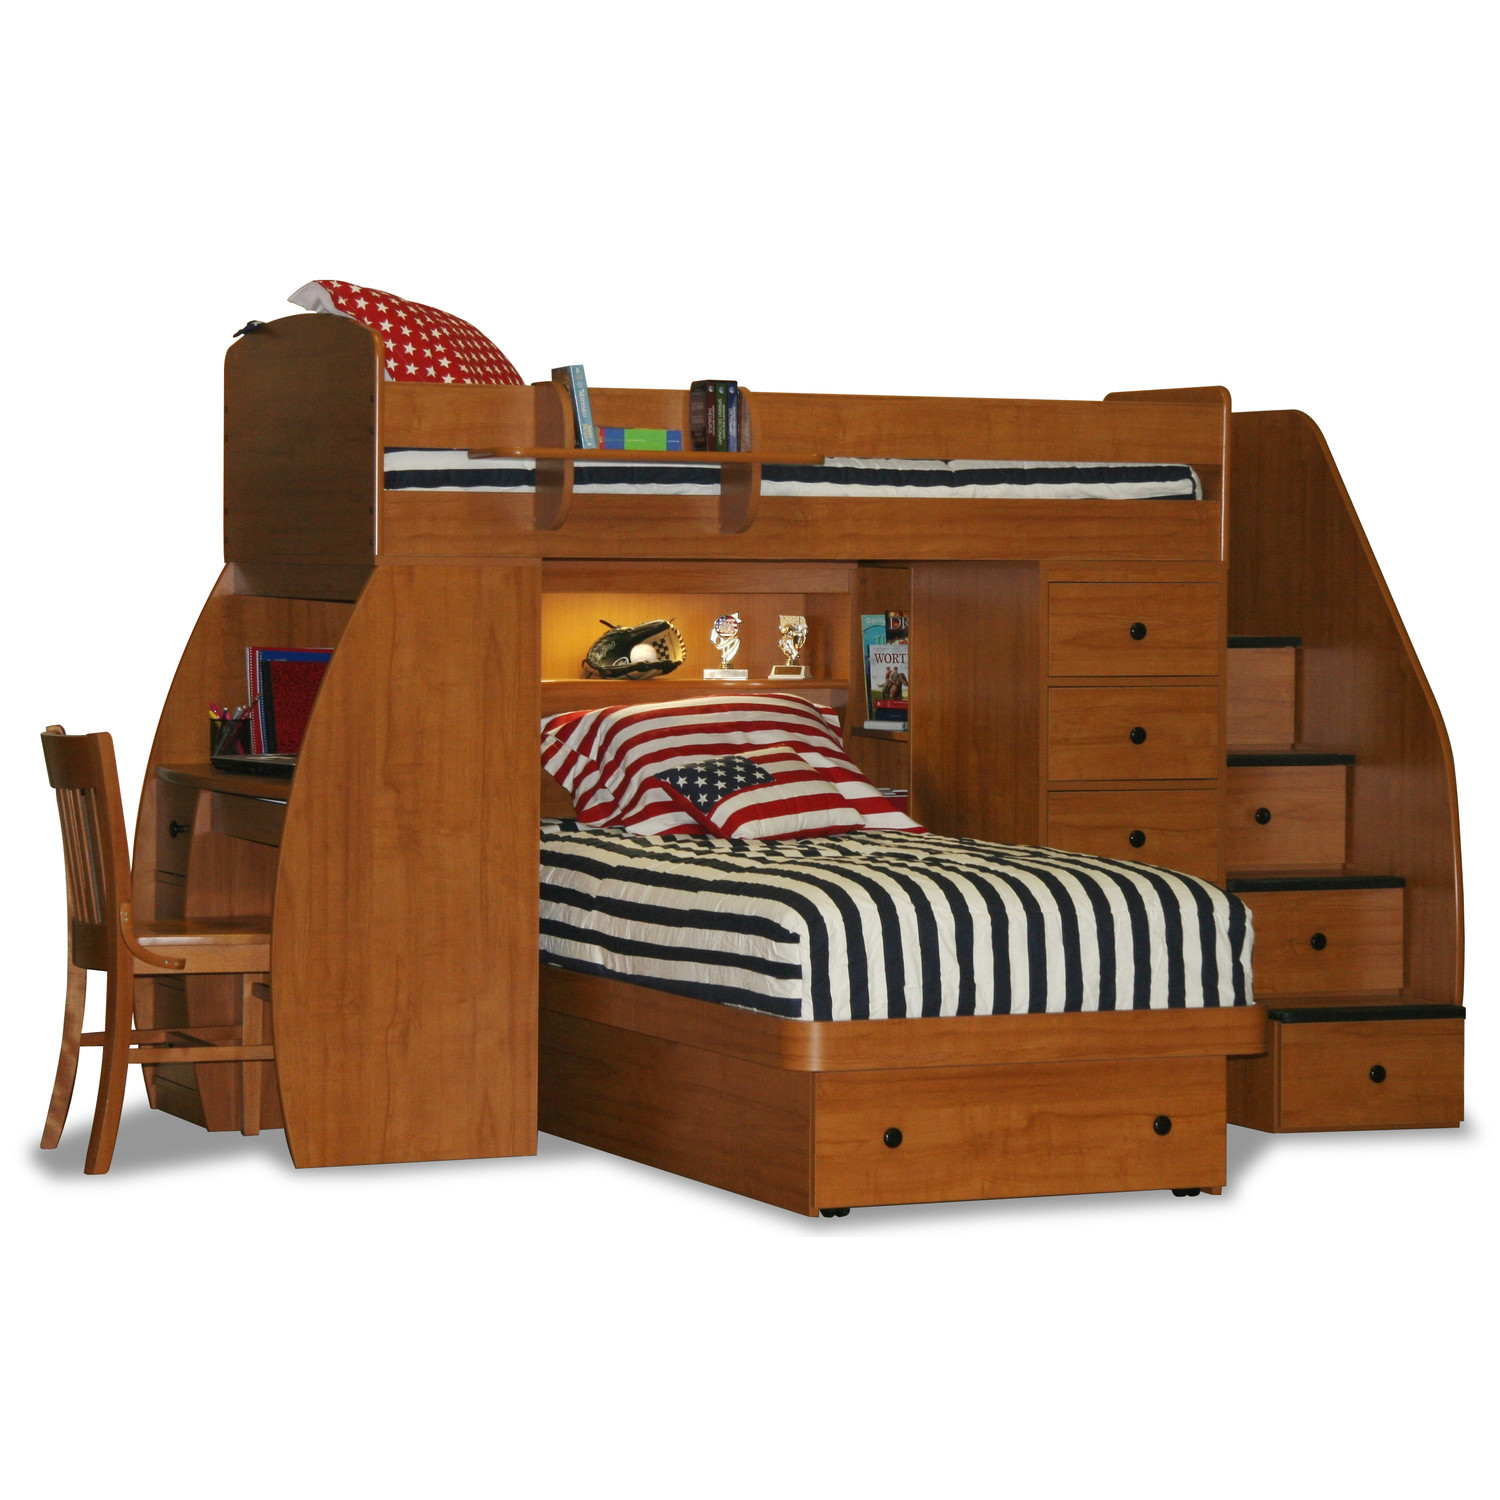 wooden style of bunk bed with two beds shelfs drawers chair